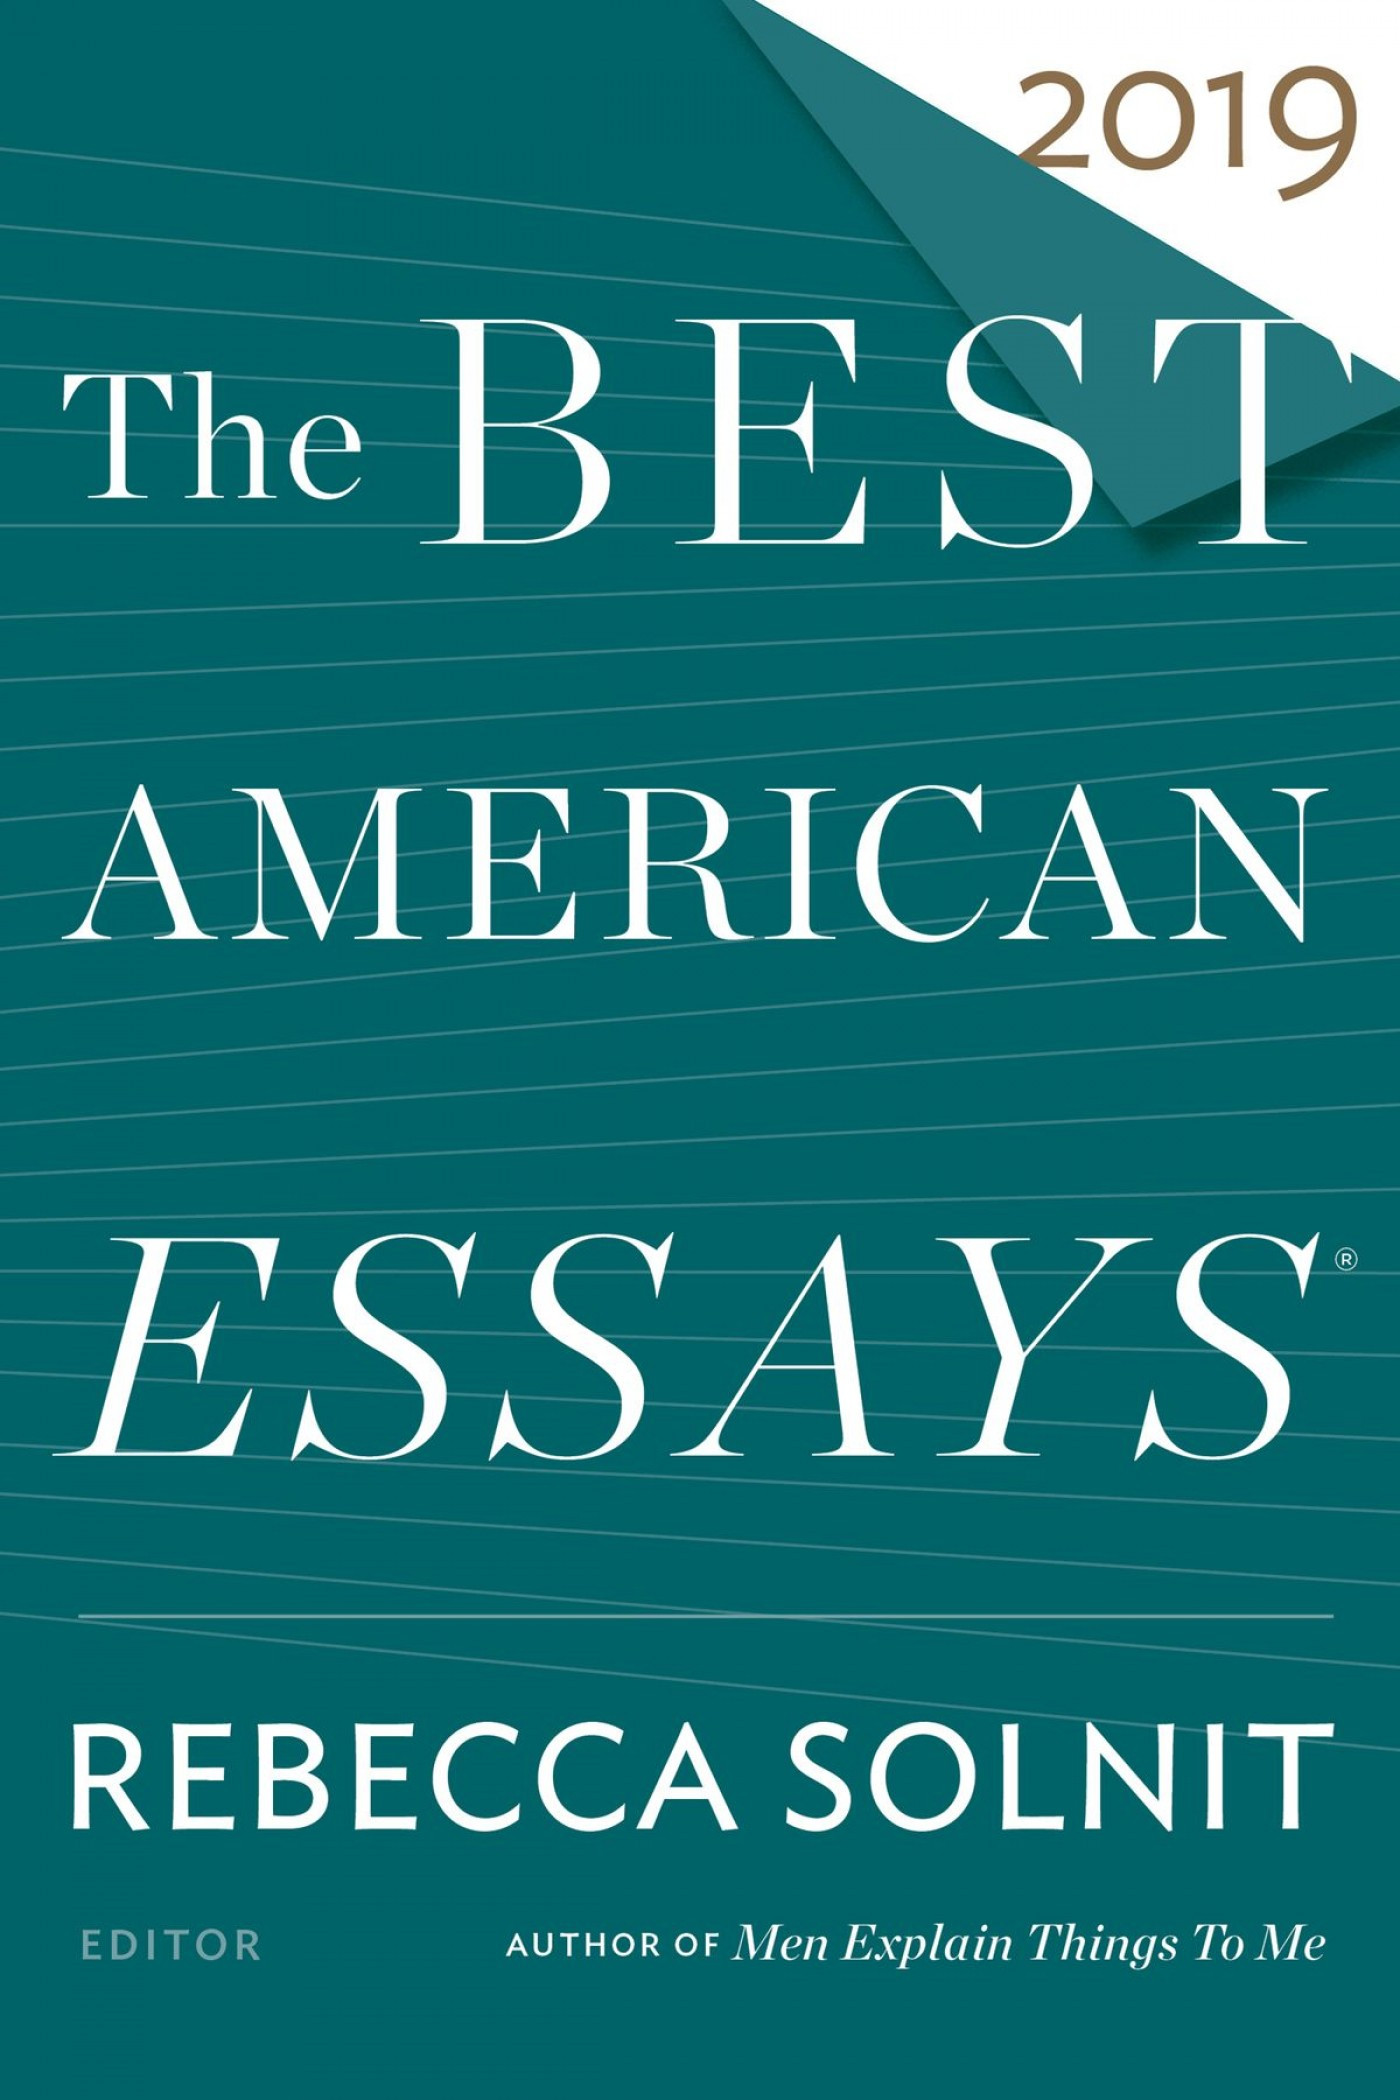 007 The Best American Essays Essay Wonderful 2018 Pdf 2017 Table Of Contents 2015 Free 1400